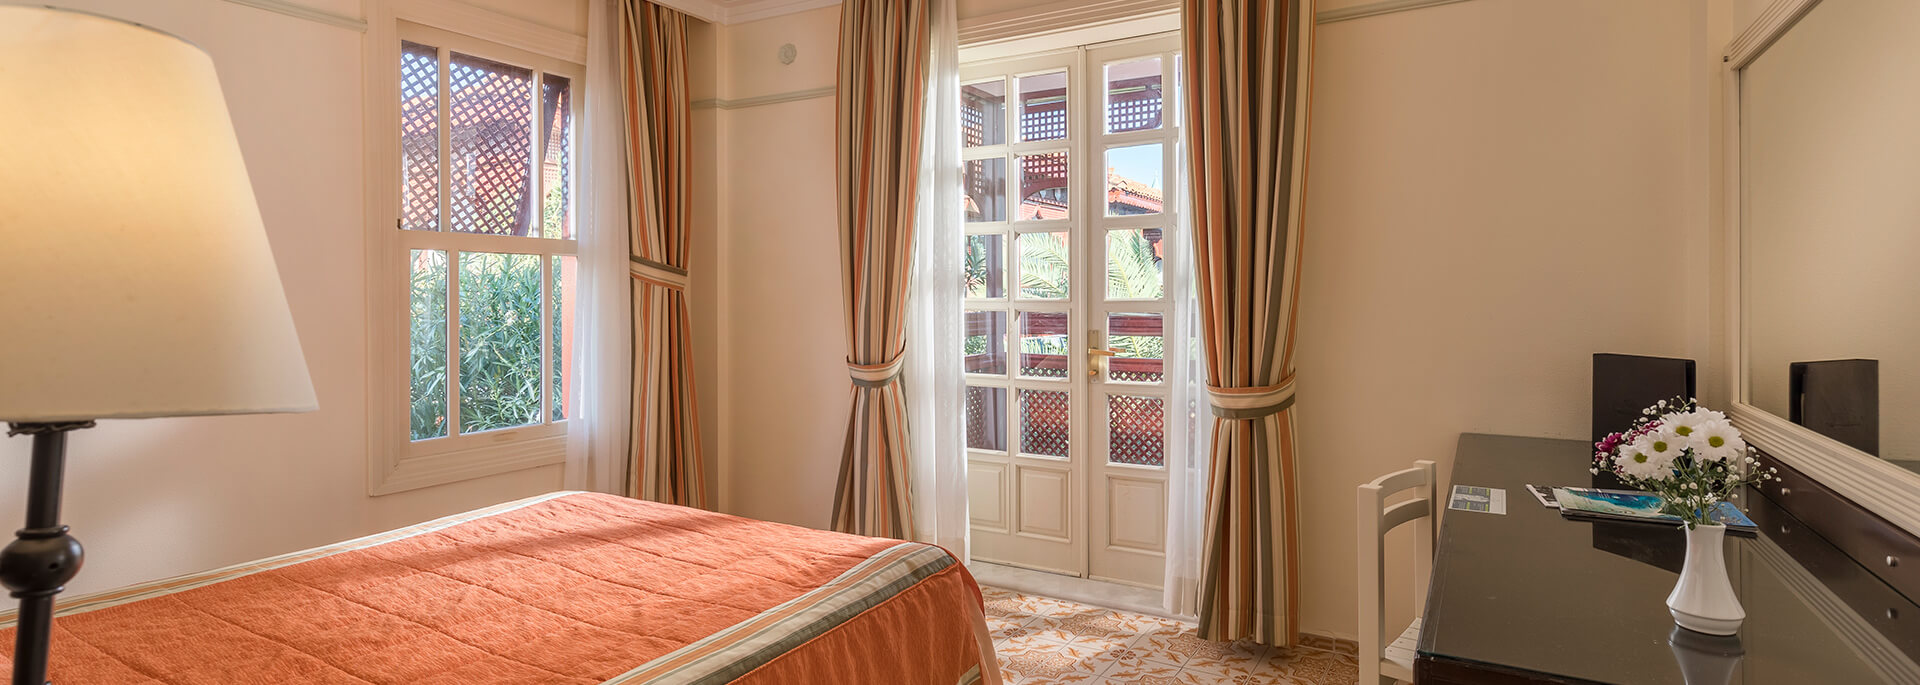 Ali Bey Club Manavgat - Family Rooms